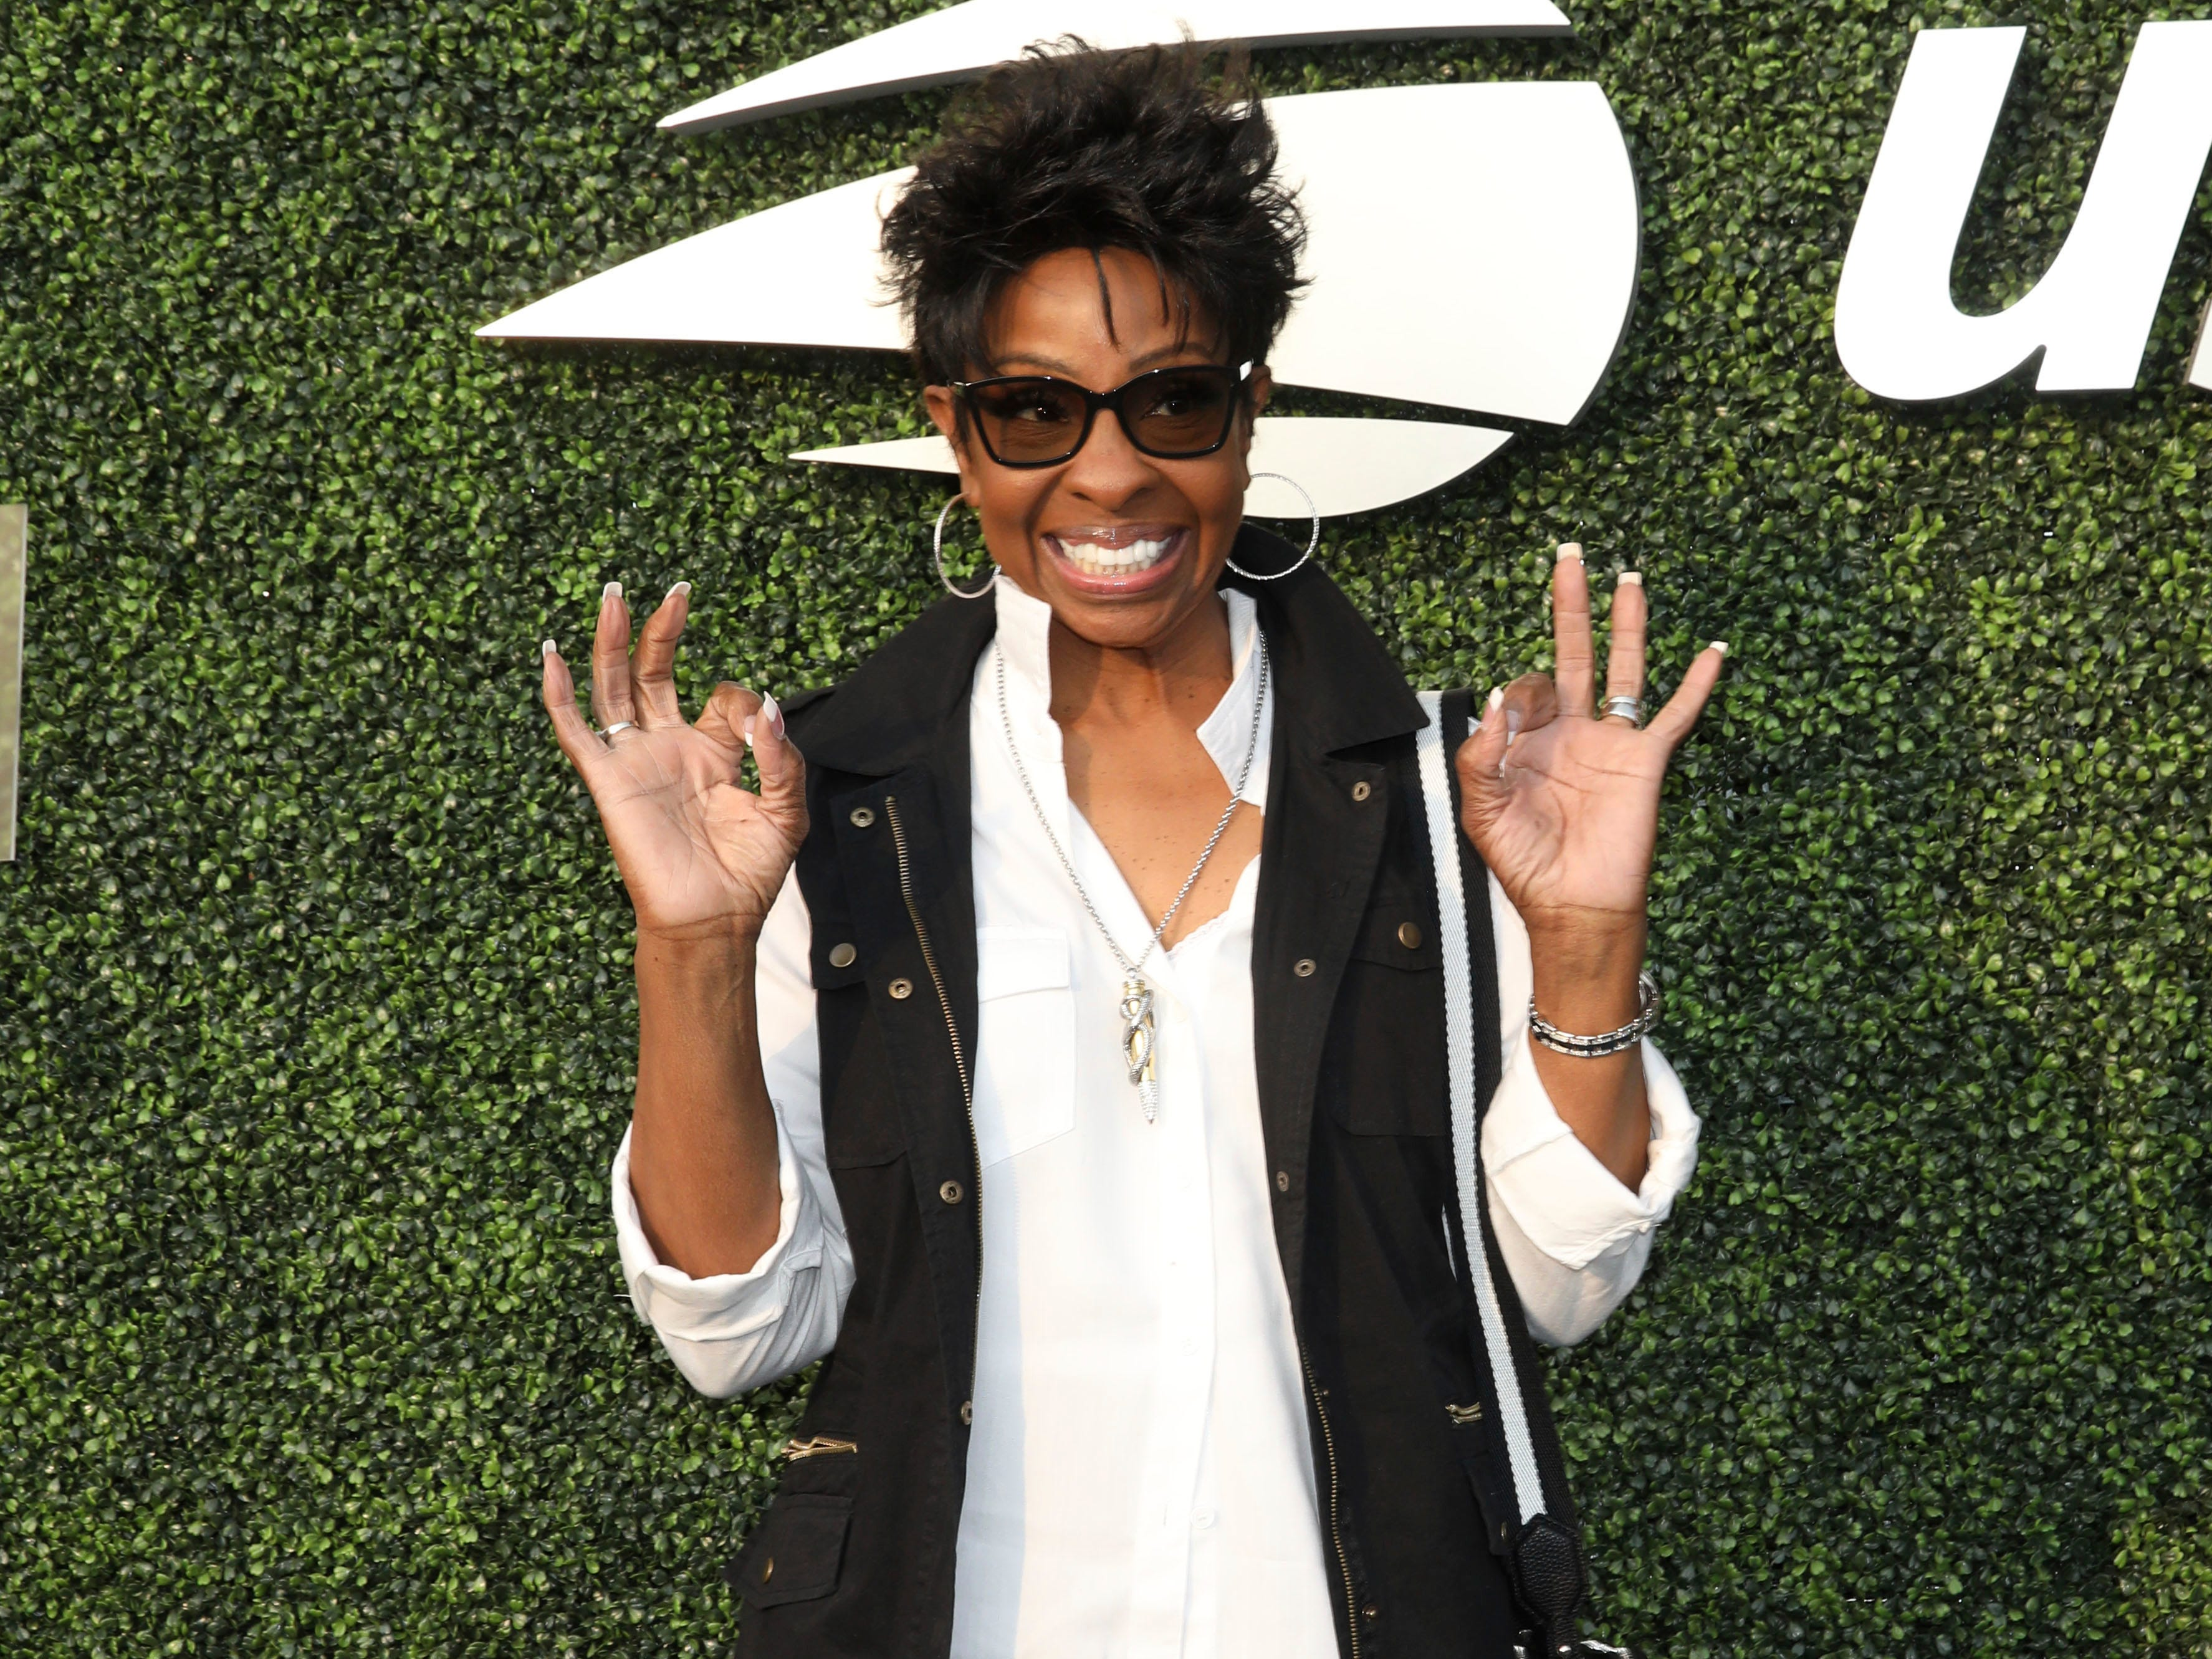 Gladys Knight attends the opening night ceremony of the US Open.